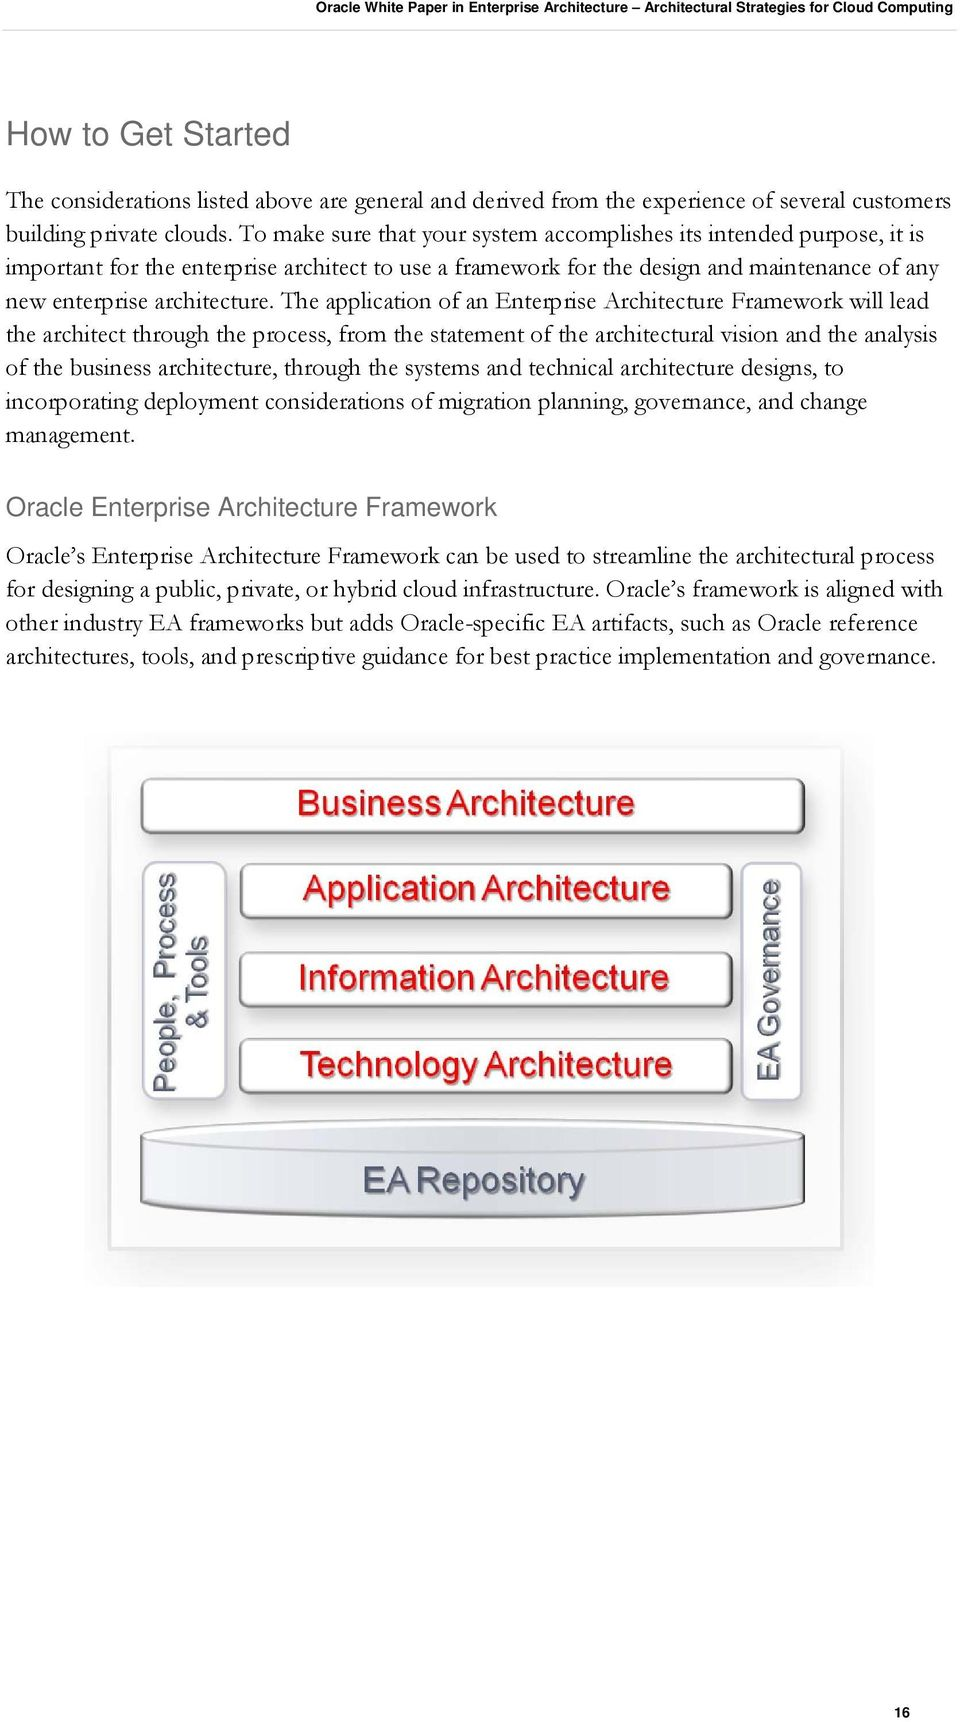 The application of an Enterprise Architecture Framework will lead the architect through the process, from the statement of the architectural vision and the analysis of the business architecture,